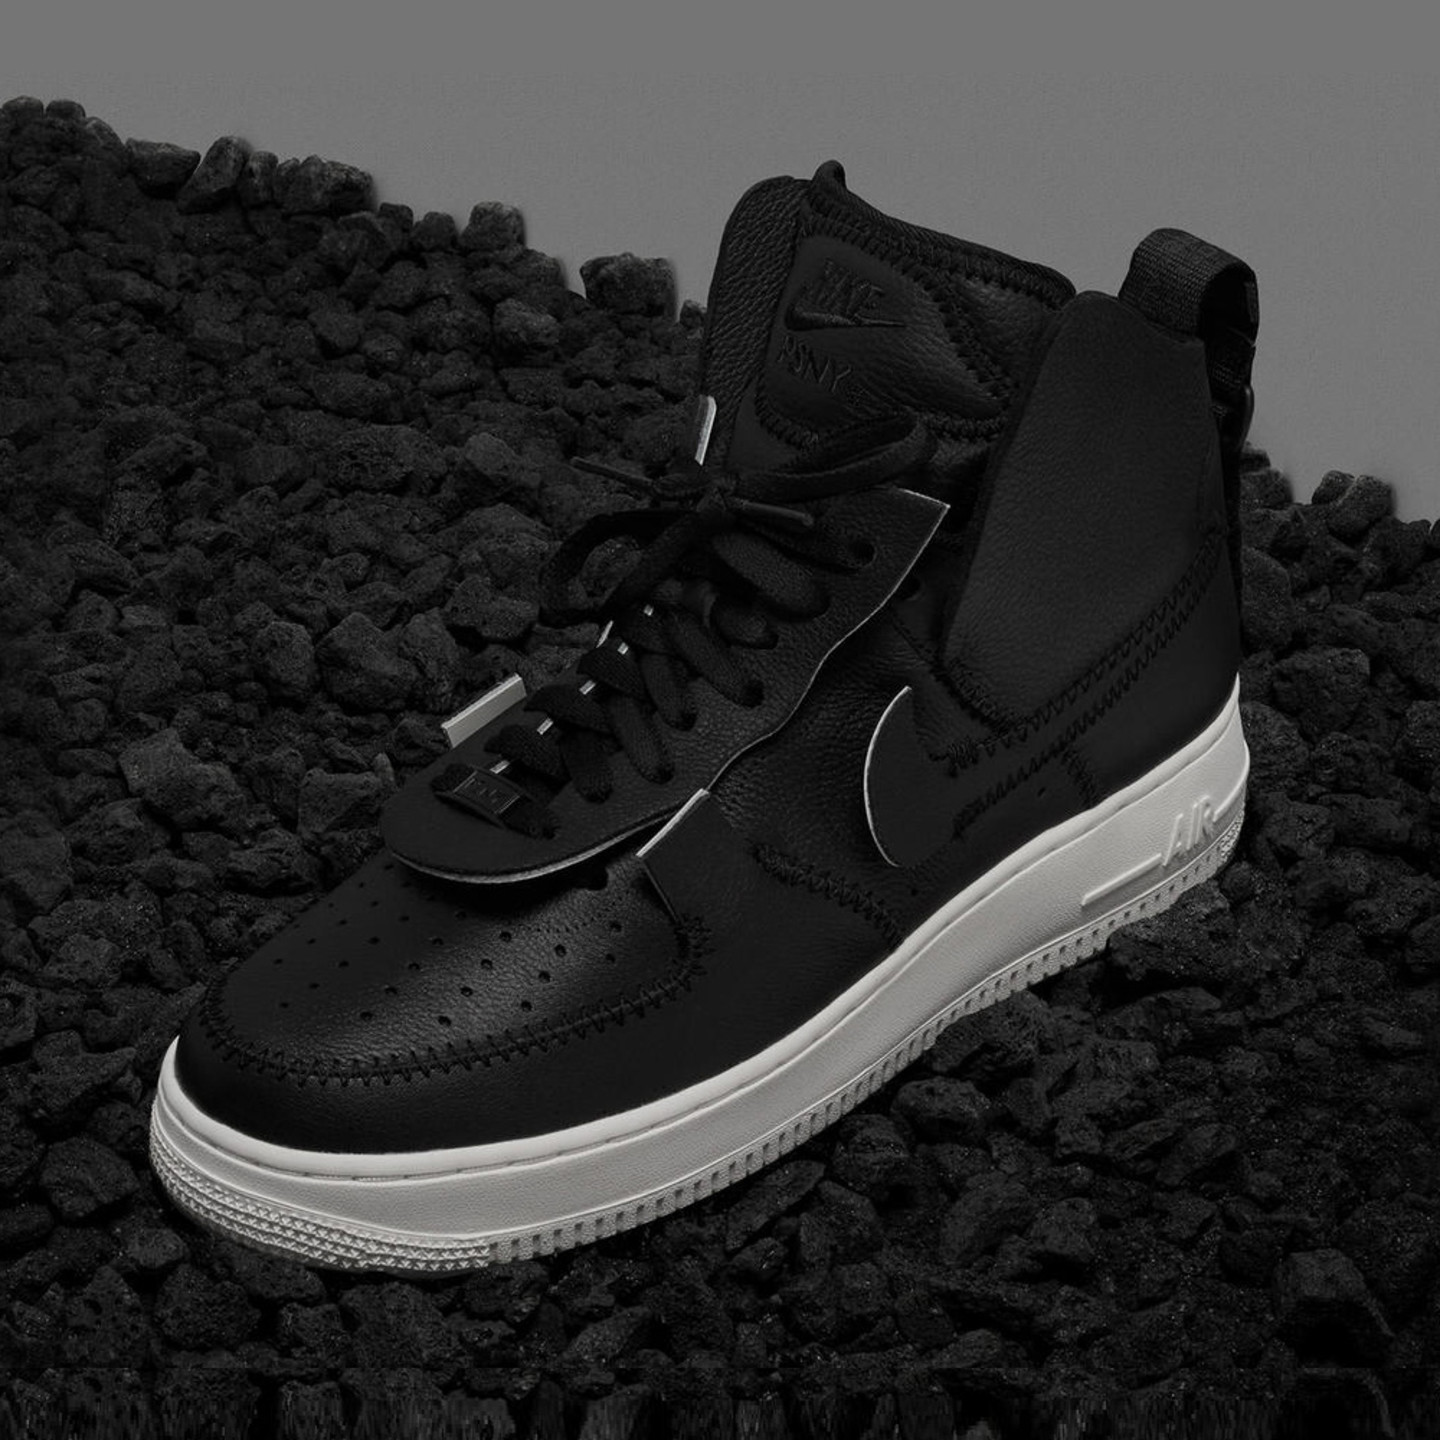 Nike Air Force 1 High / Low x PSNY Black / Sail AO9292-002